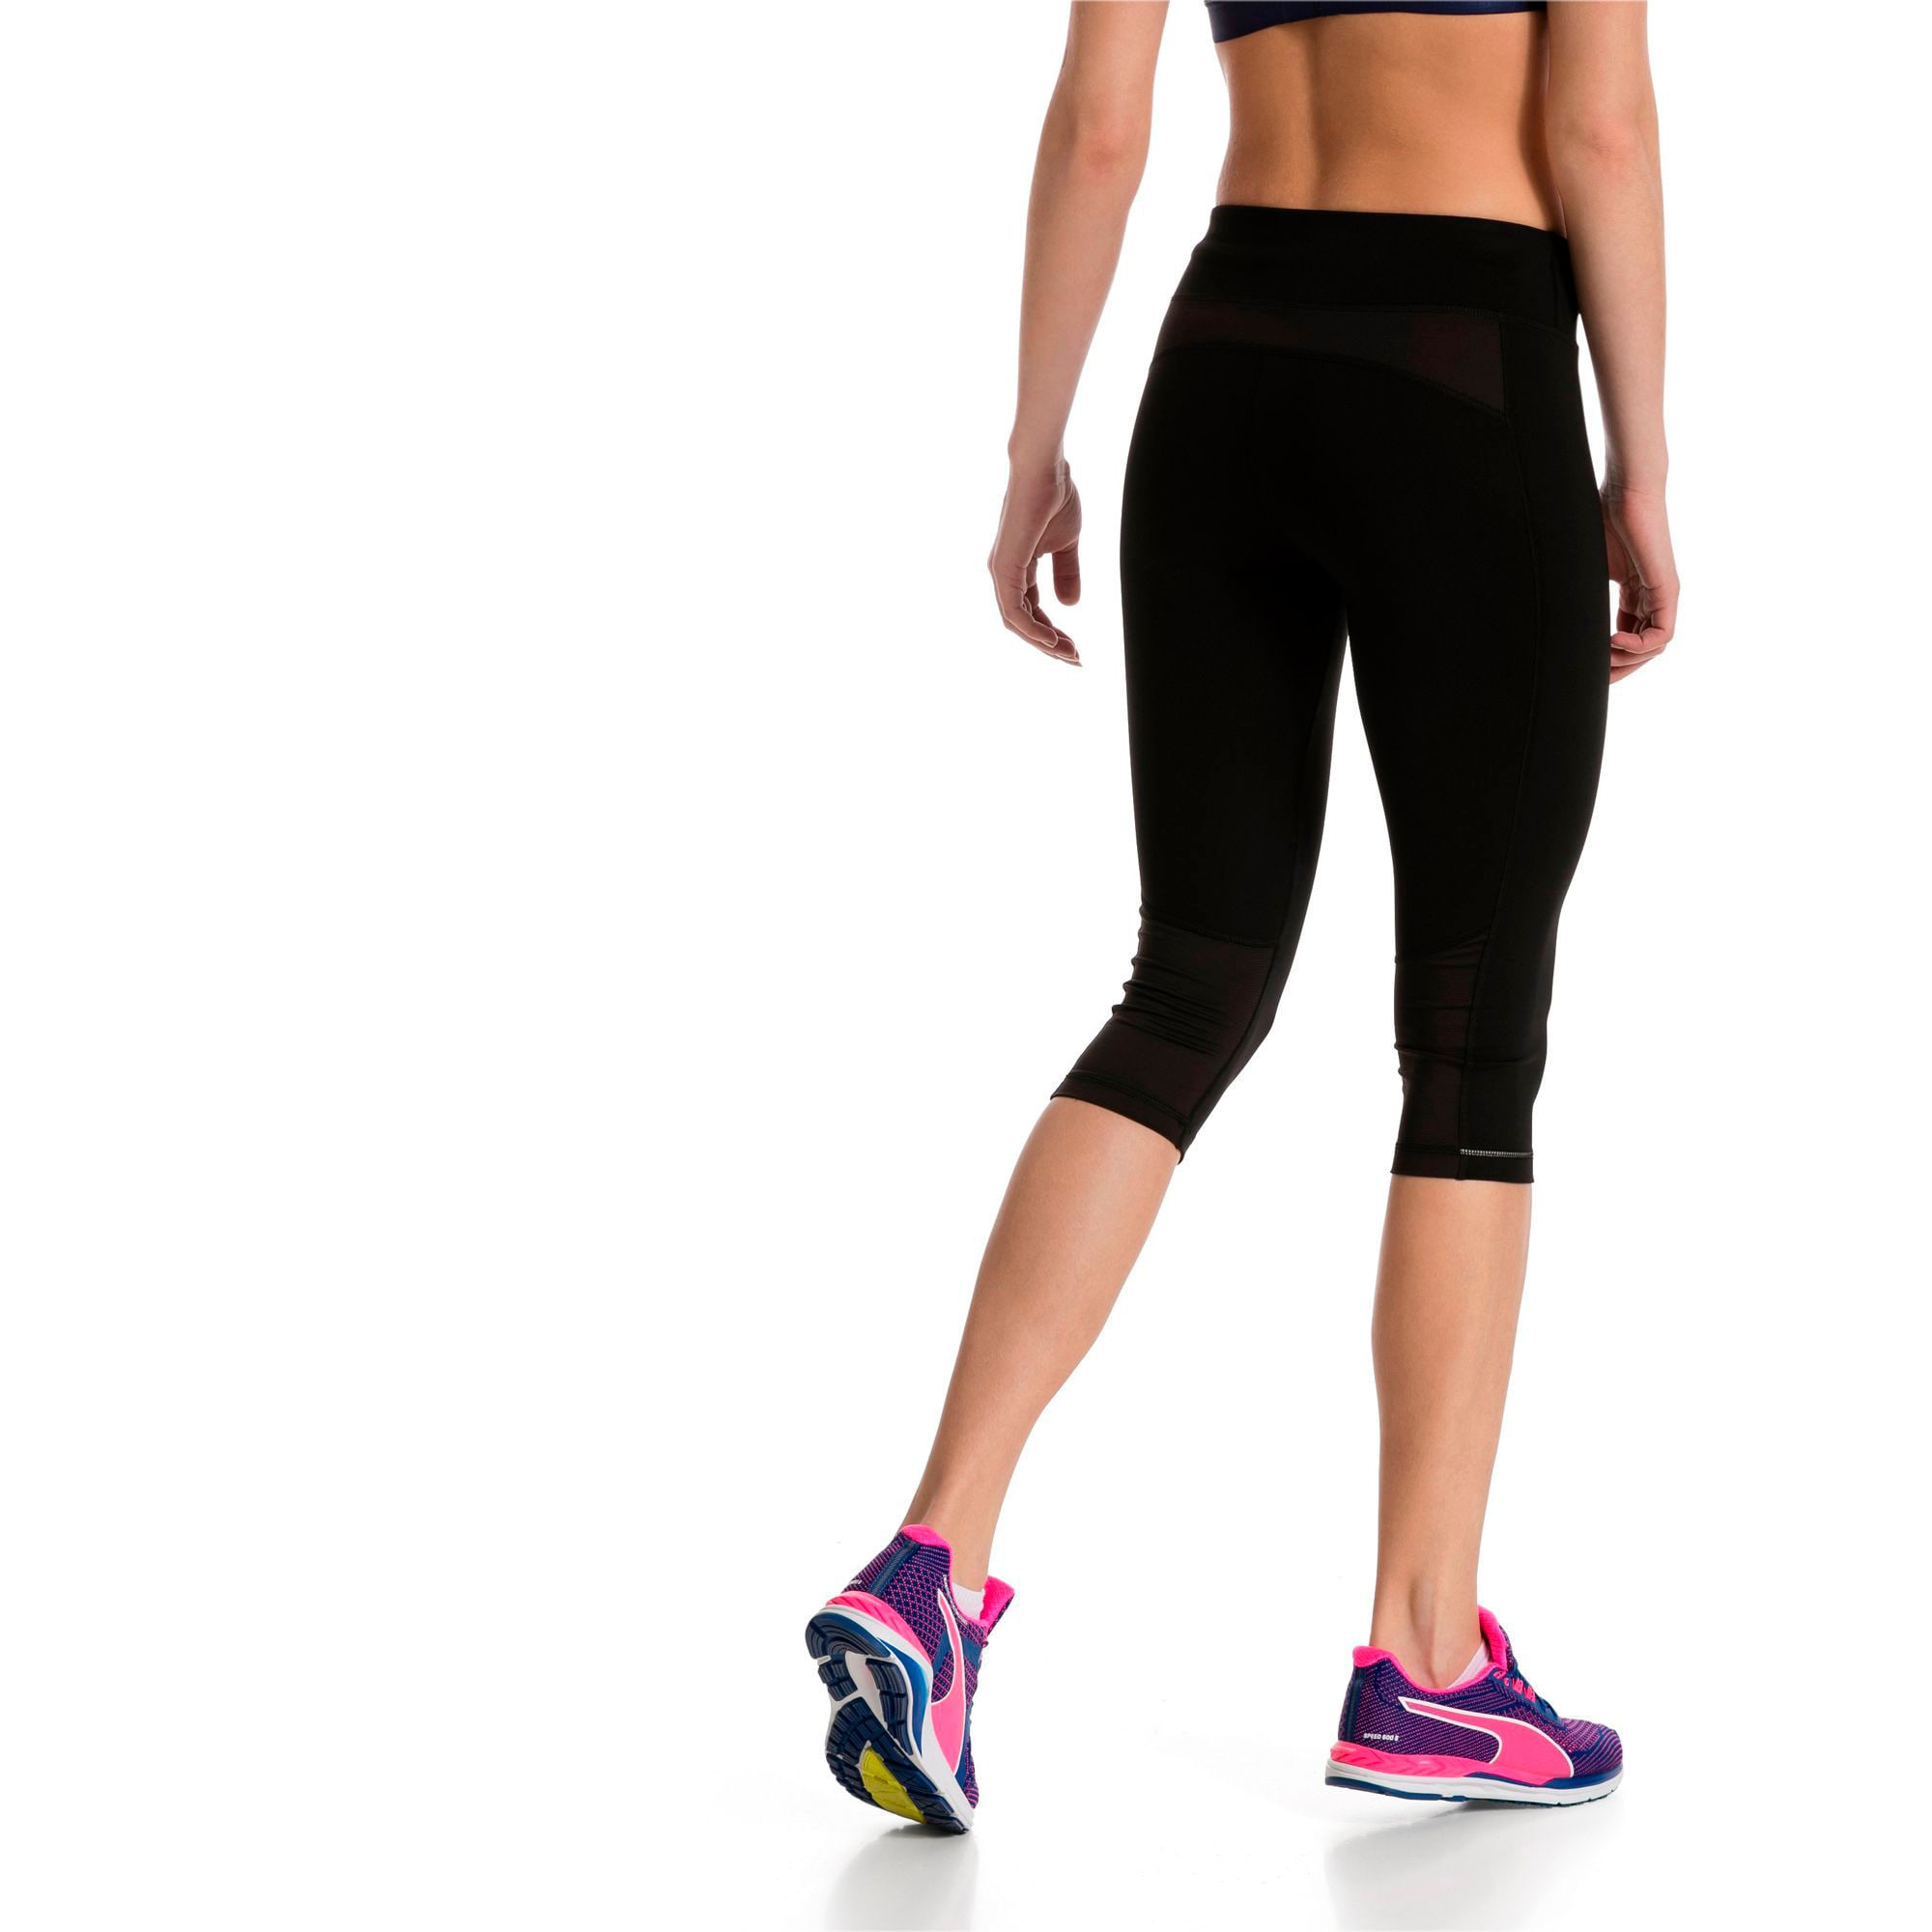 Thumbnail 2 of Running Women's 3/4 Tights, Puma Black, medium-IND